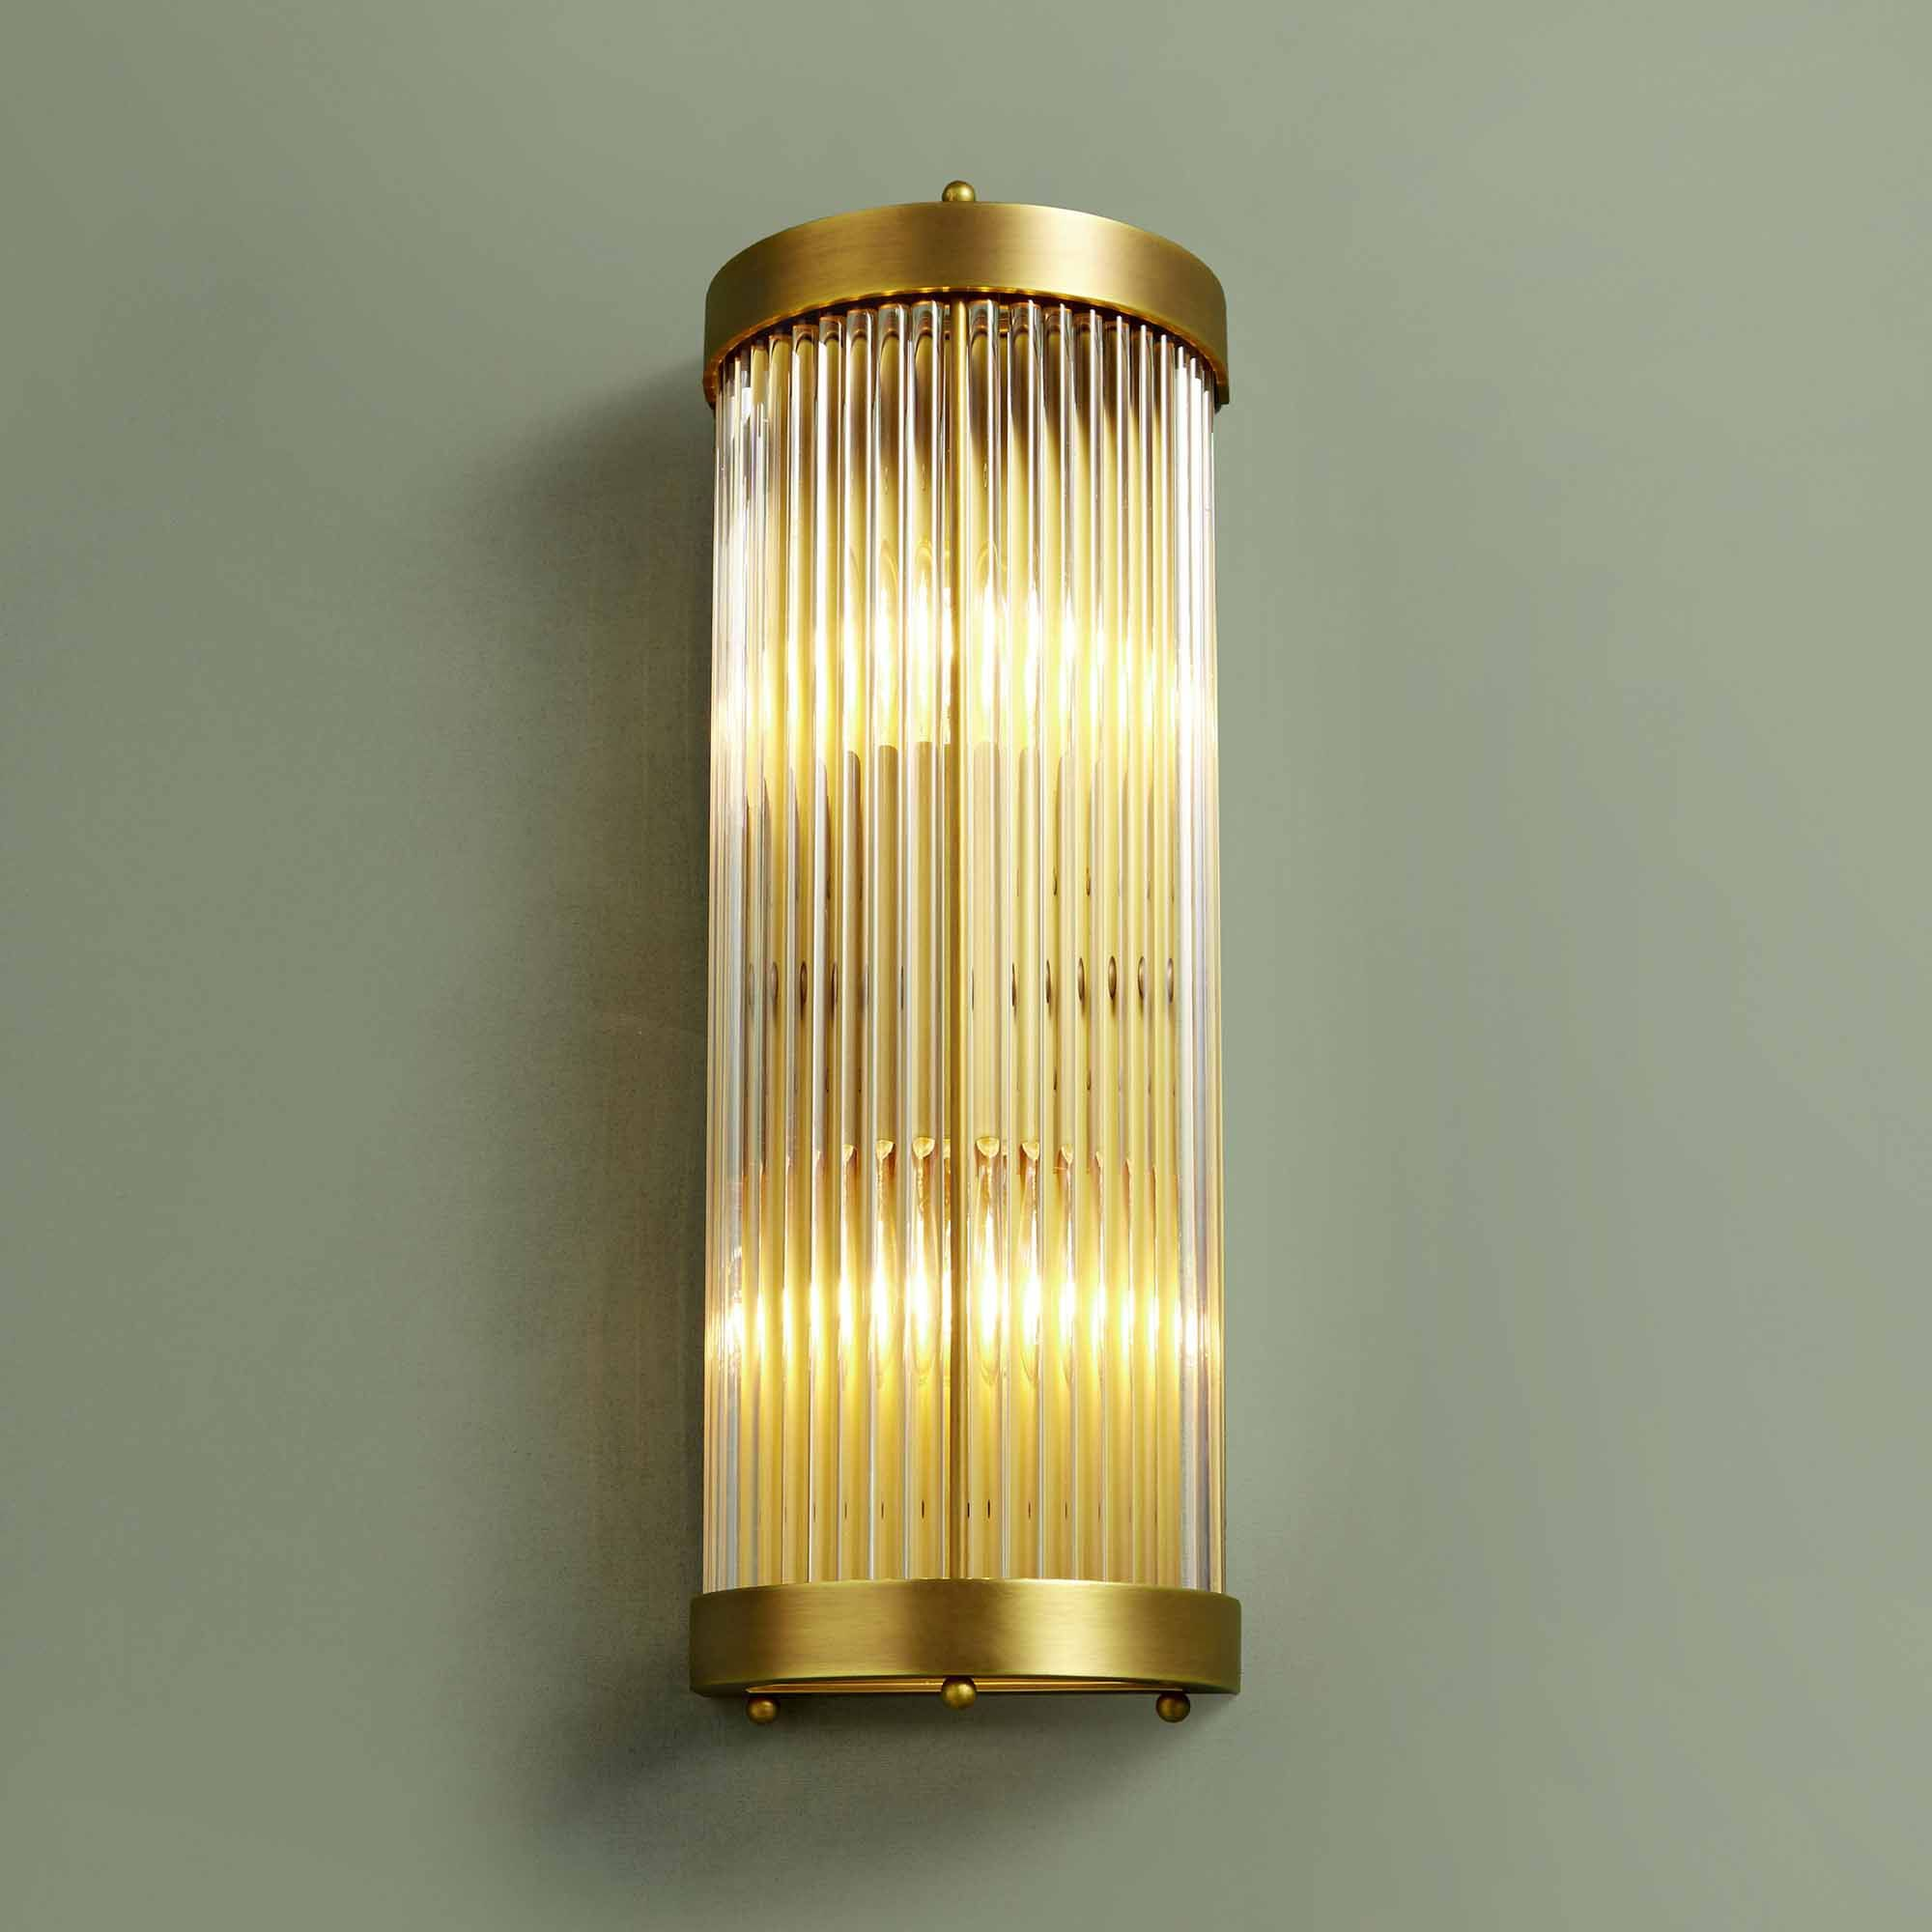 US $13.0 |Art Deco Lampshades For Lamps Candle light cover Manufacturers Chandelier Light Shade Lamp Cover Drawing E14 Bubble Wall|lampshades for